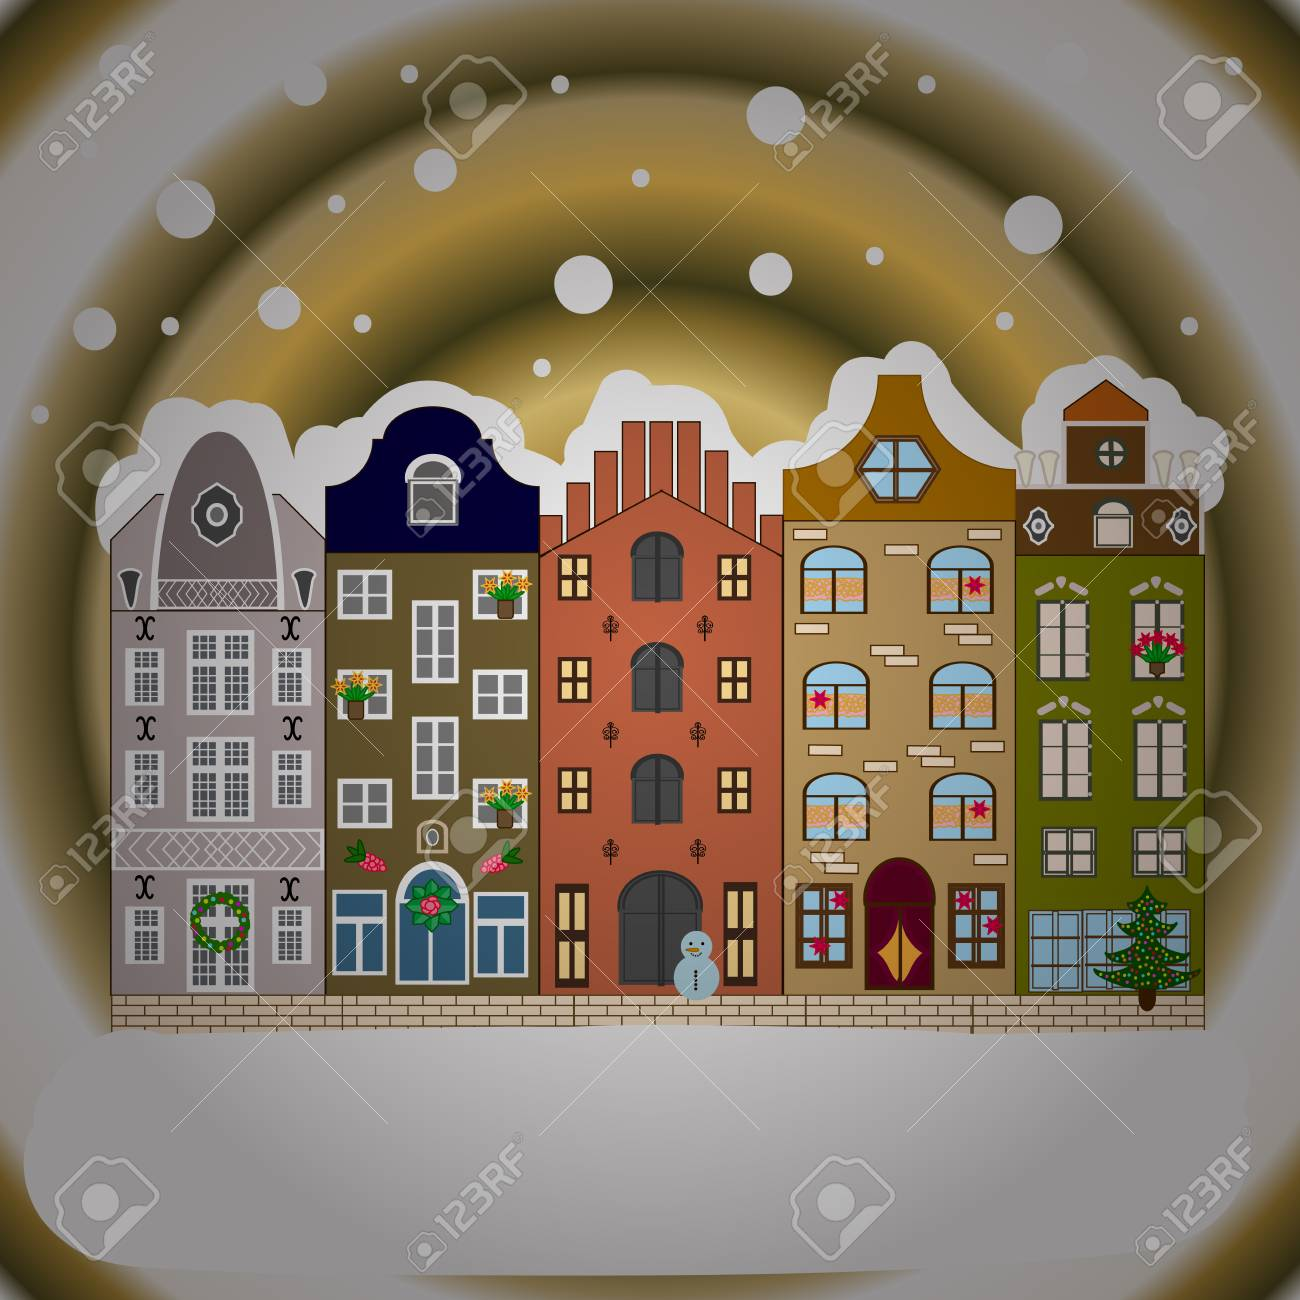 Cityscape cute town christmas eve new year holidays greeting cityscape cute town christmas eve new year holidays greeting card poster design kristyandbryce Gallery